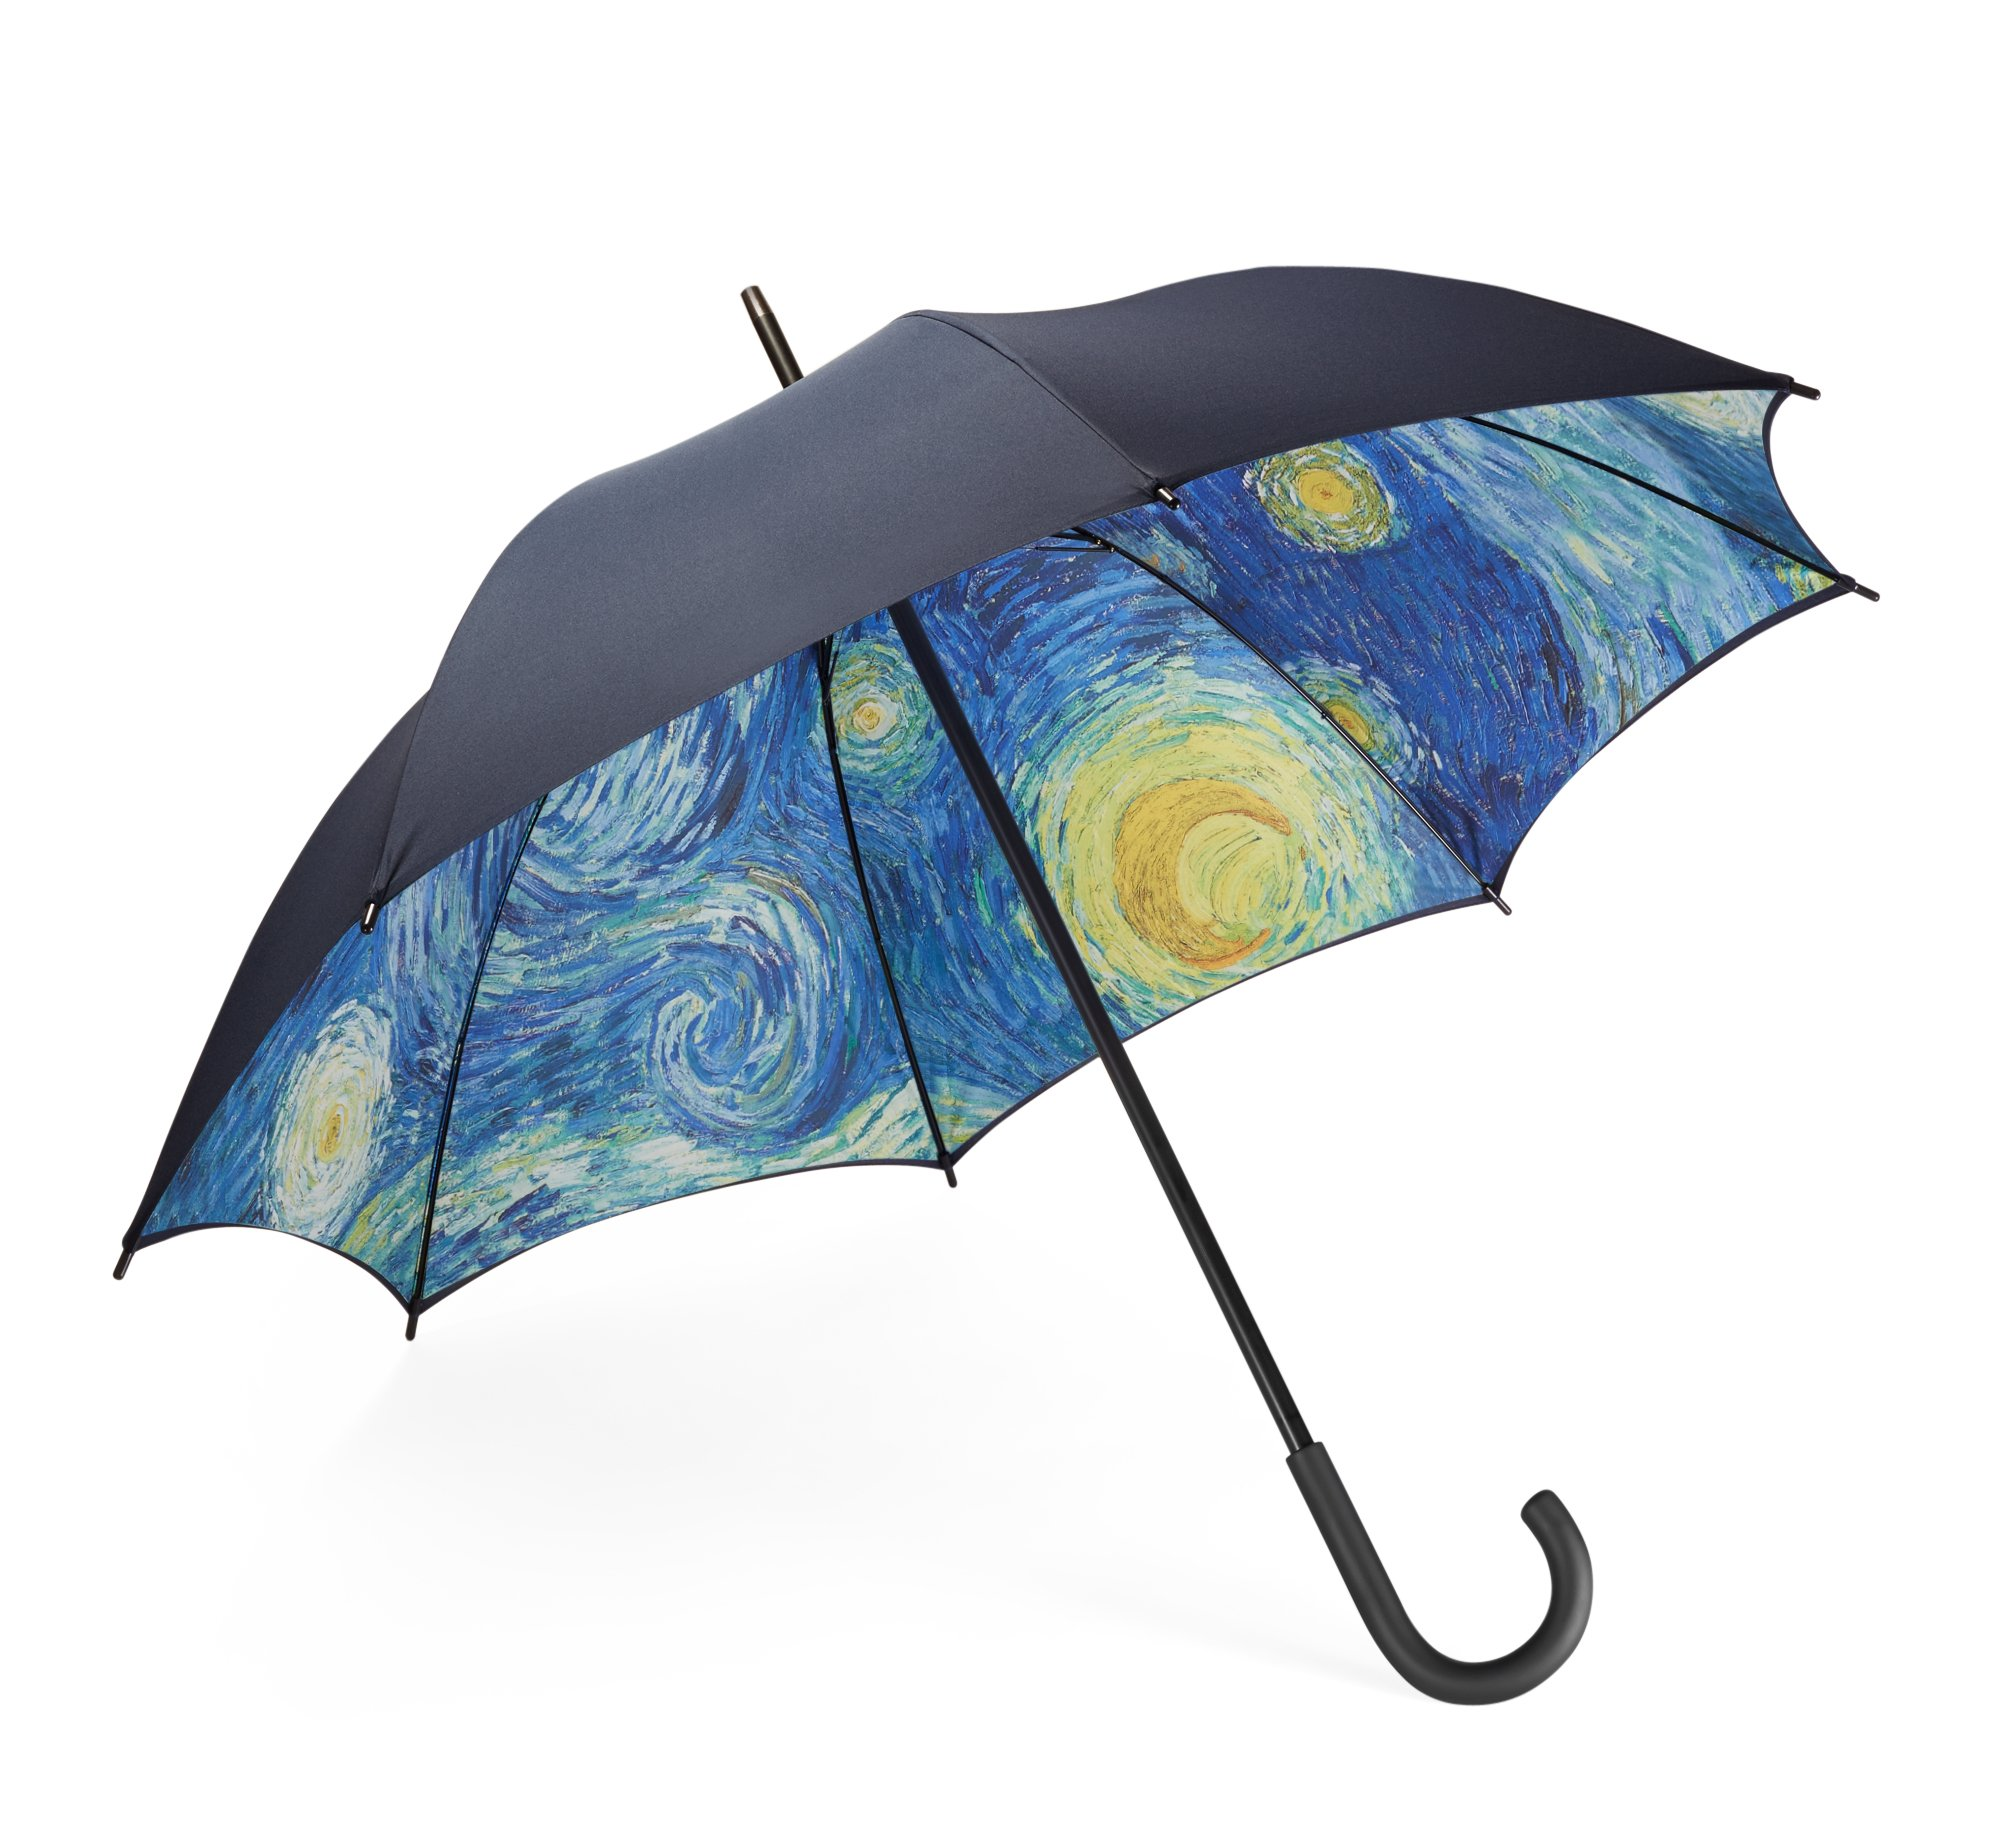 Authentic, Original MoMA Full Sized Starry Night Umbrella - Sold directly from MoMA Design Store